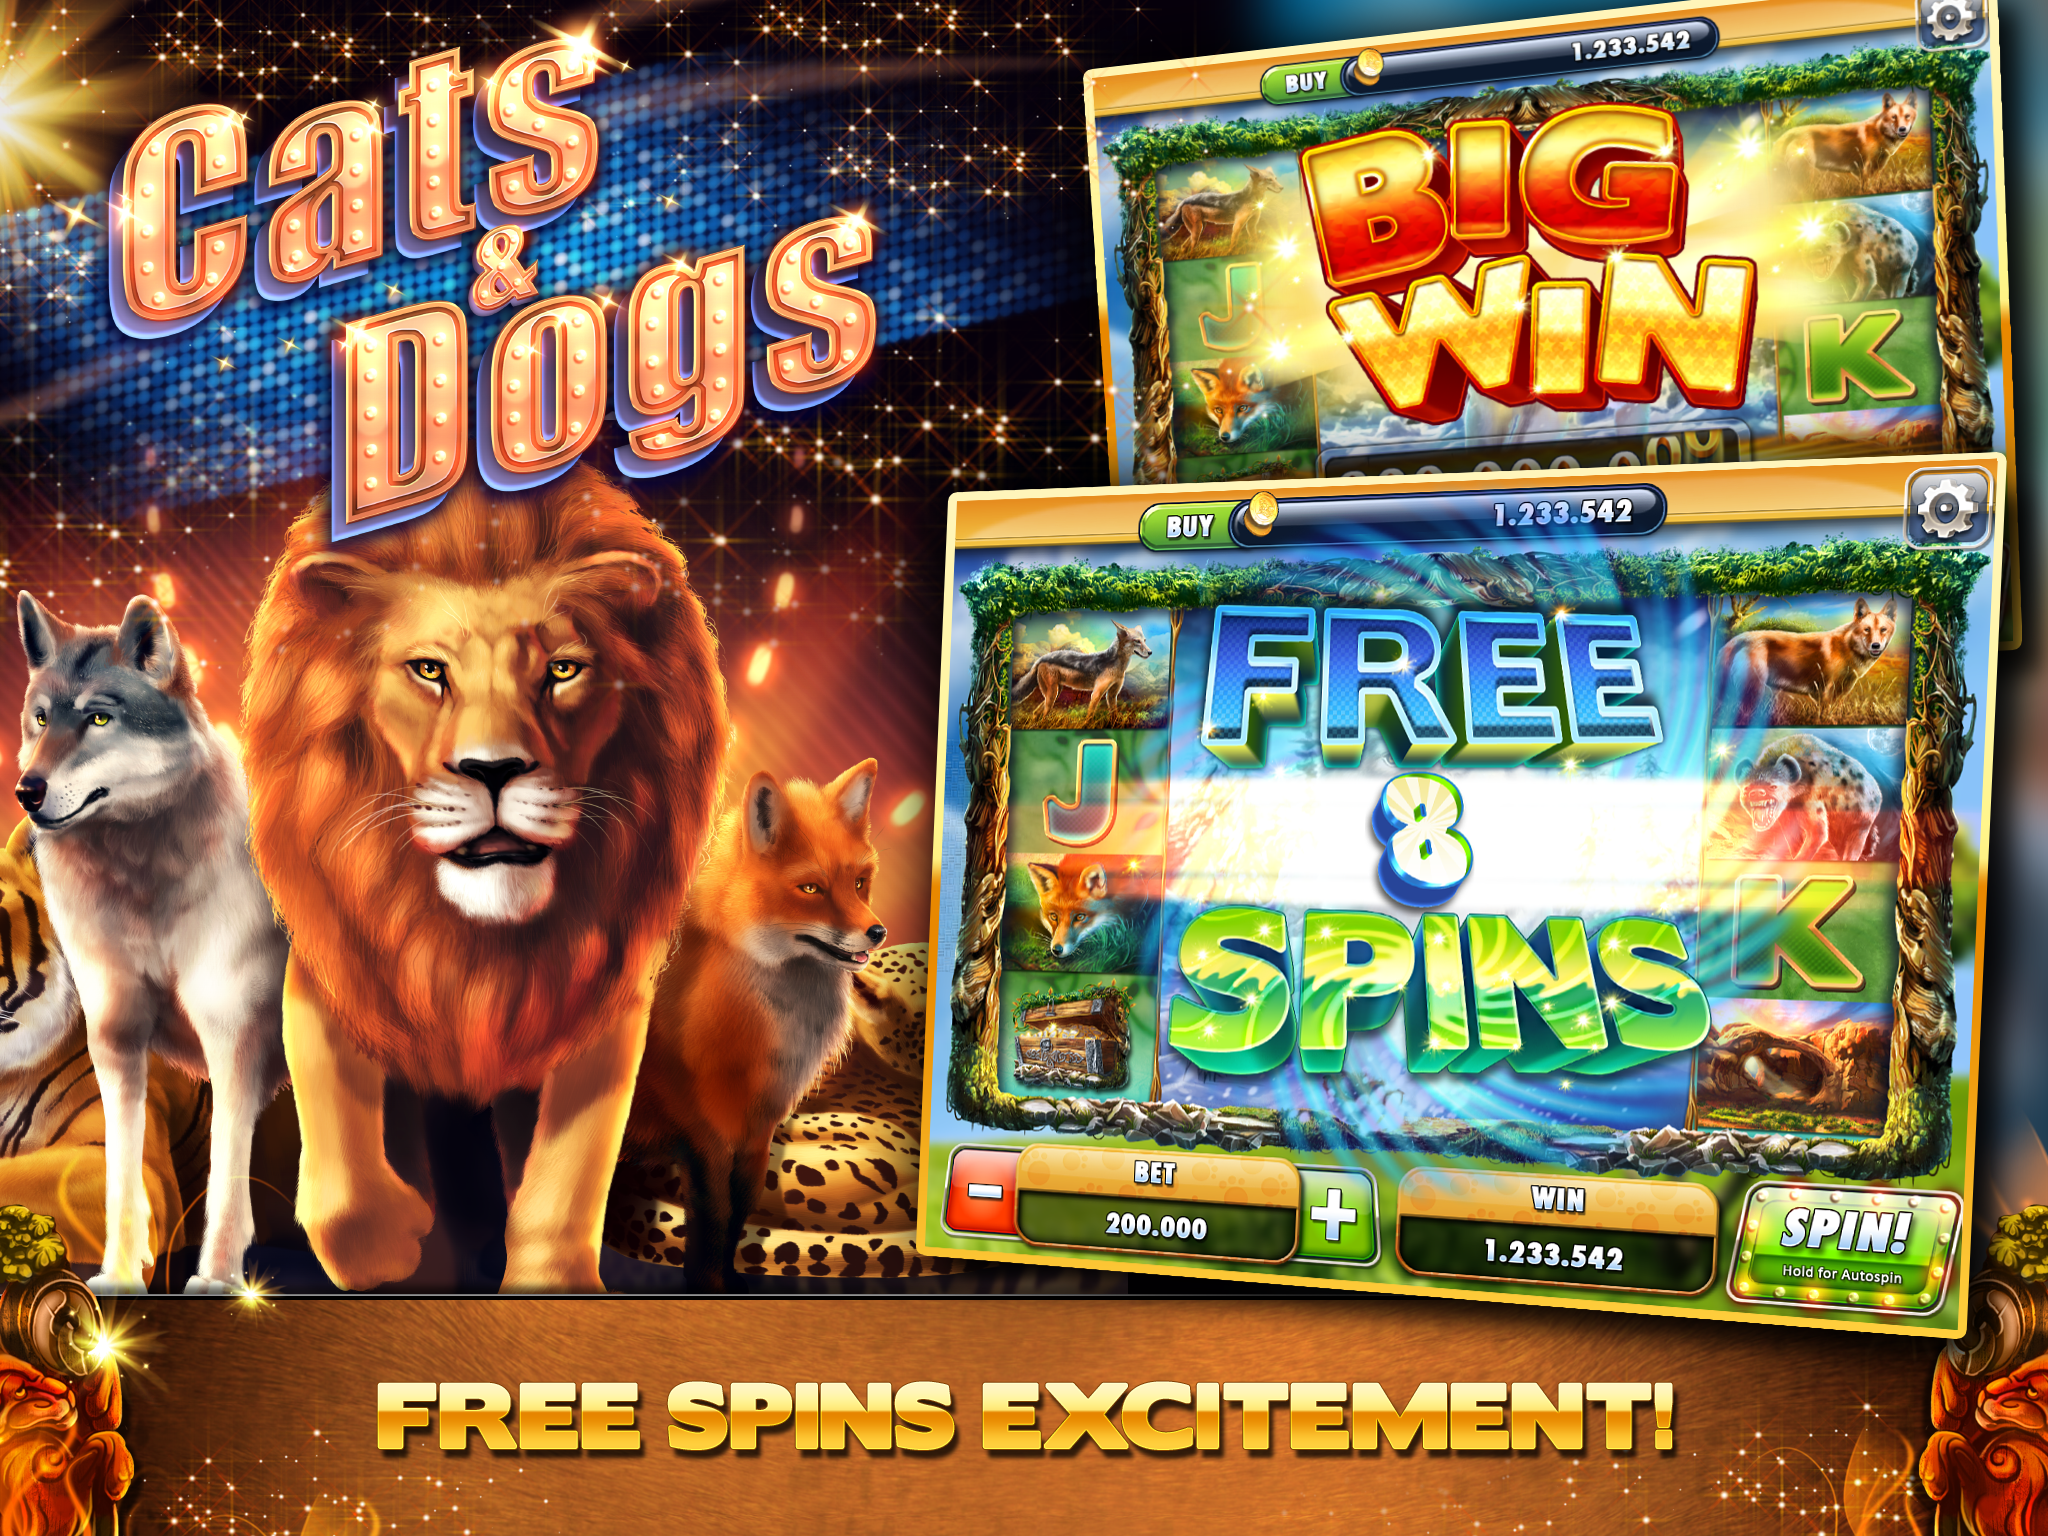 2048_1536_screen_04_spins.png